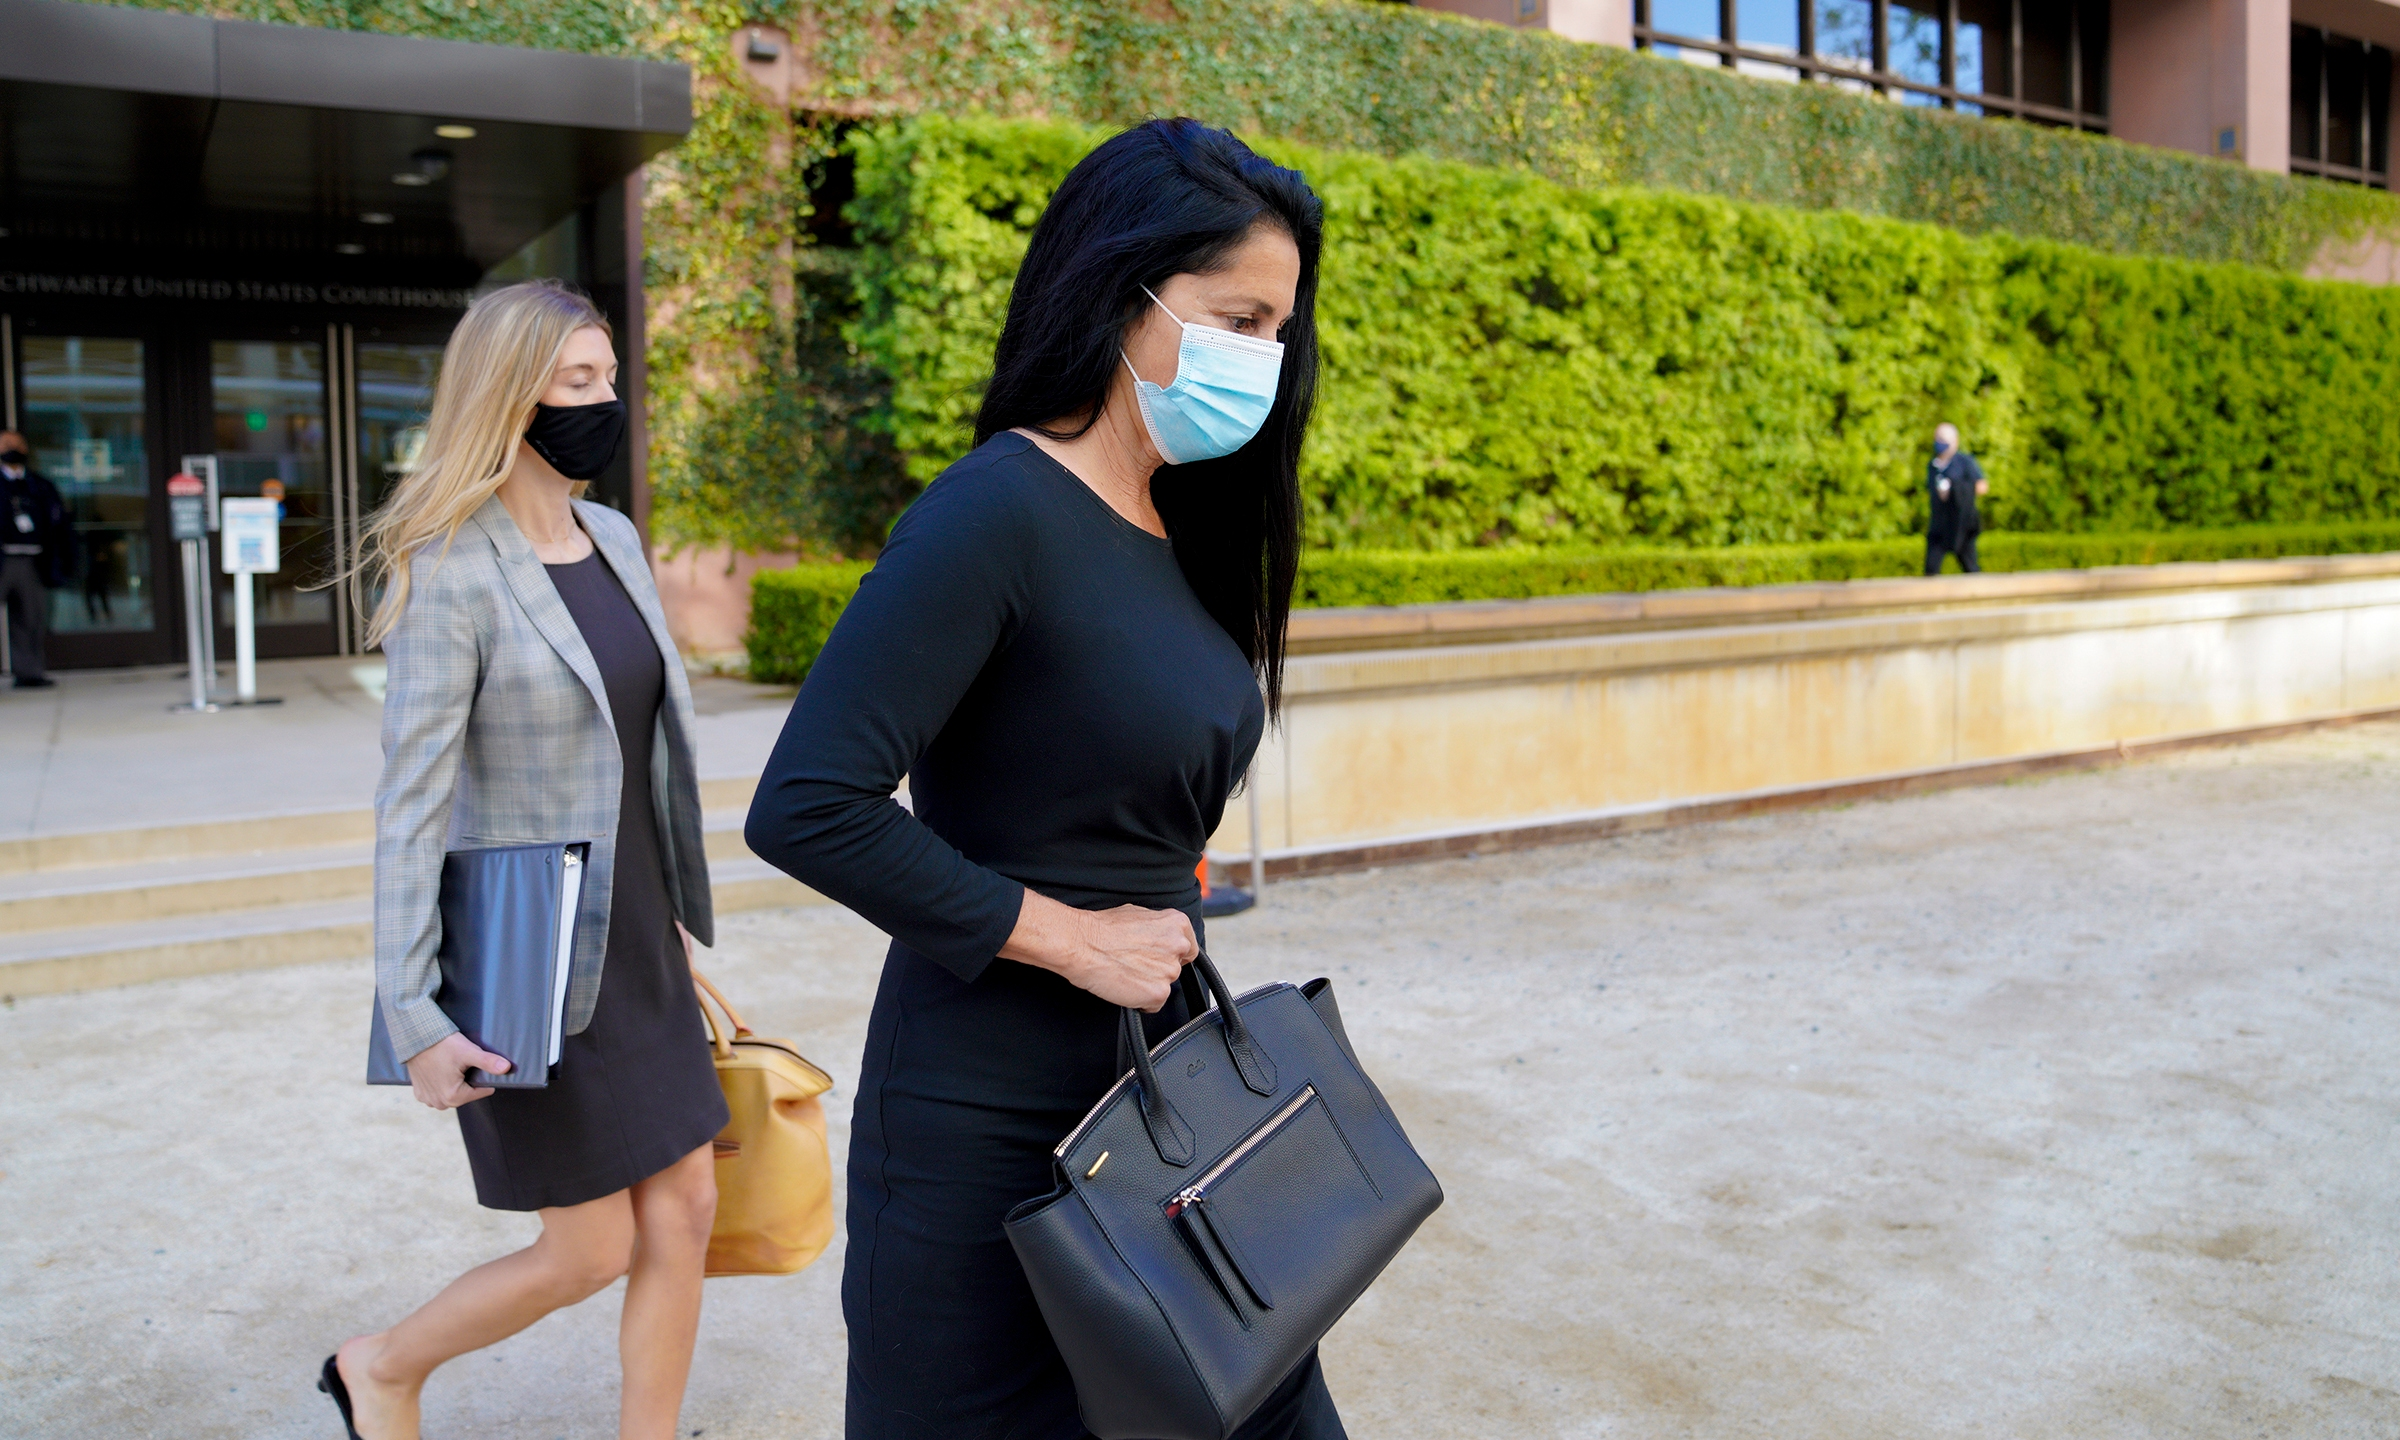 Gina Champion-Cain walks into Federal Court in San Diego for her sentencing hearing on March 31, 2021. (Nelvin C. Cepeda / The San Diego Union-Tribune via Associated Press)